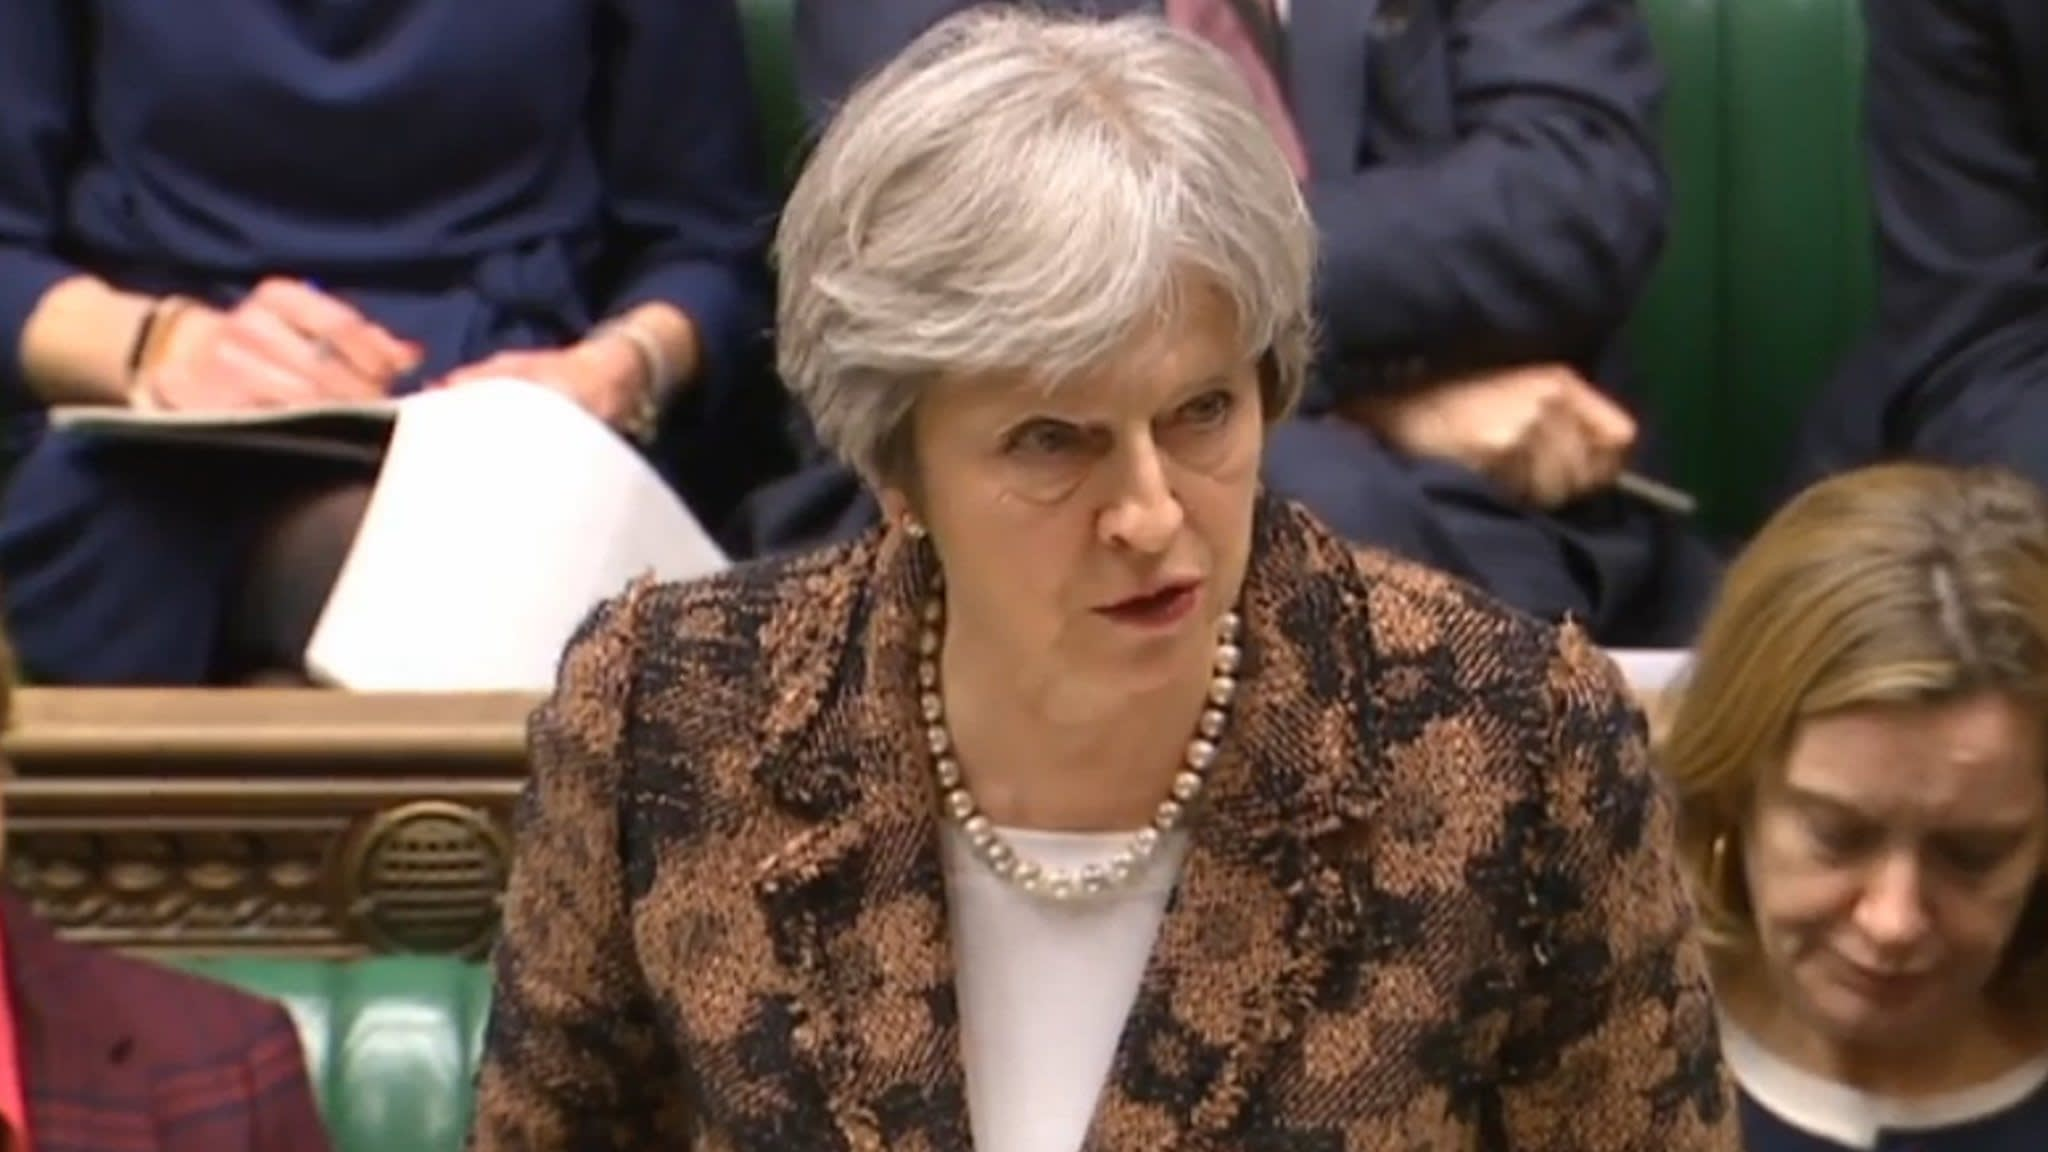 May: Russia 'highly likely' responsible for attack on former spy Skripal